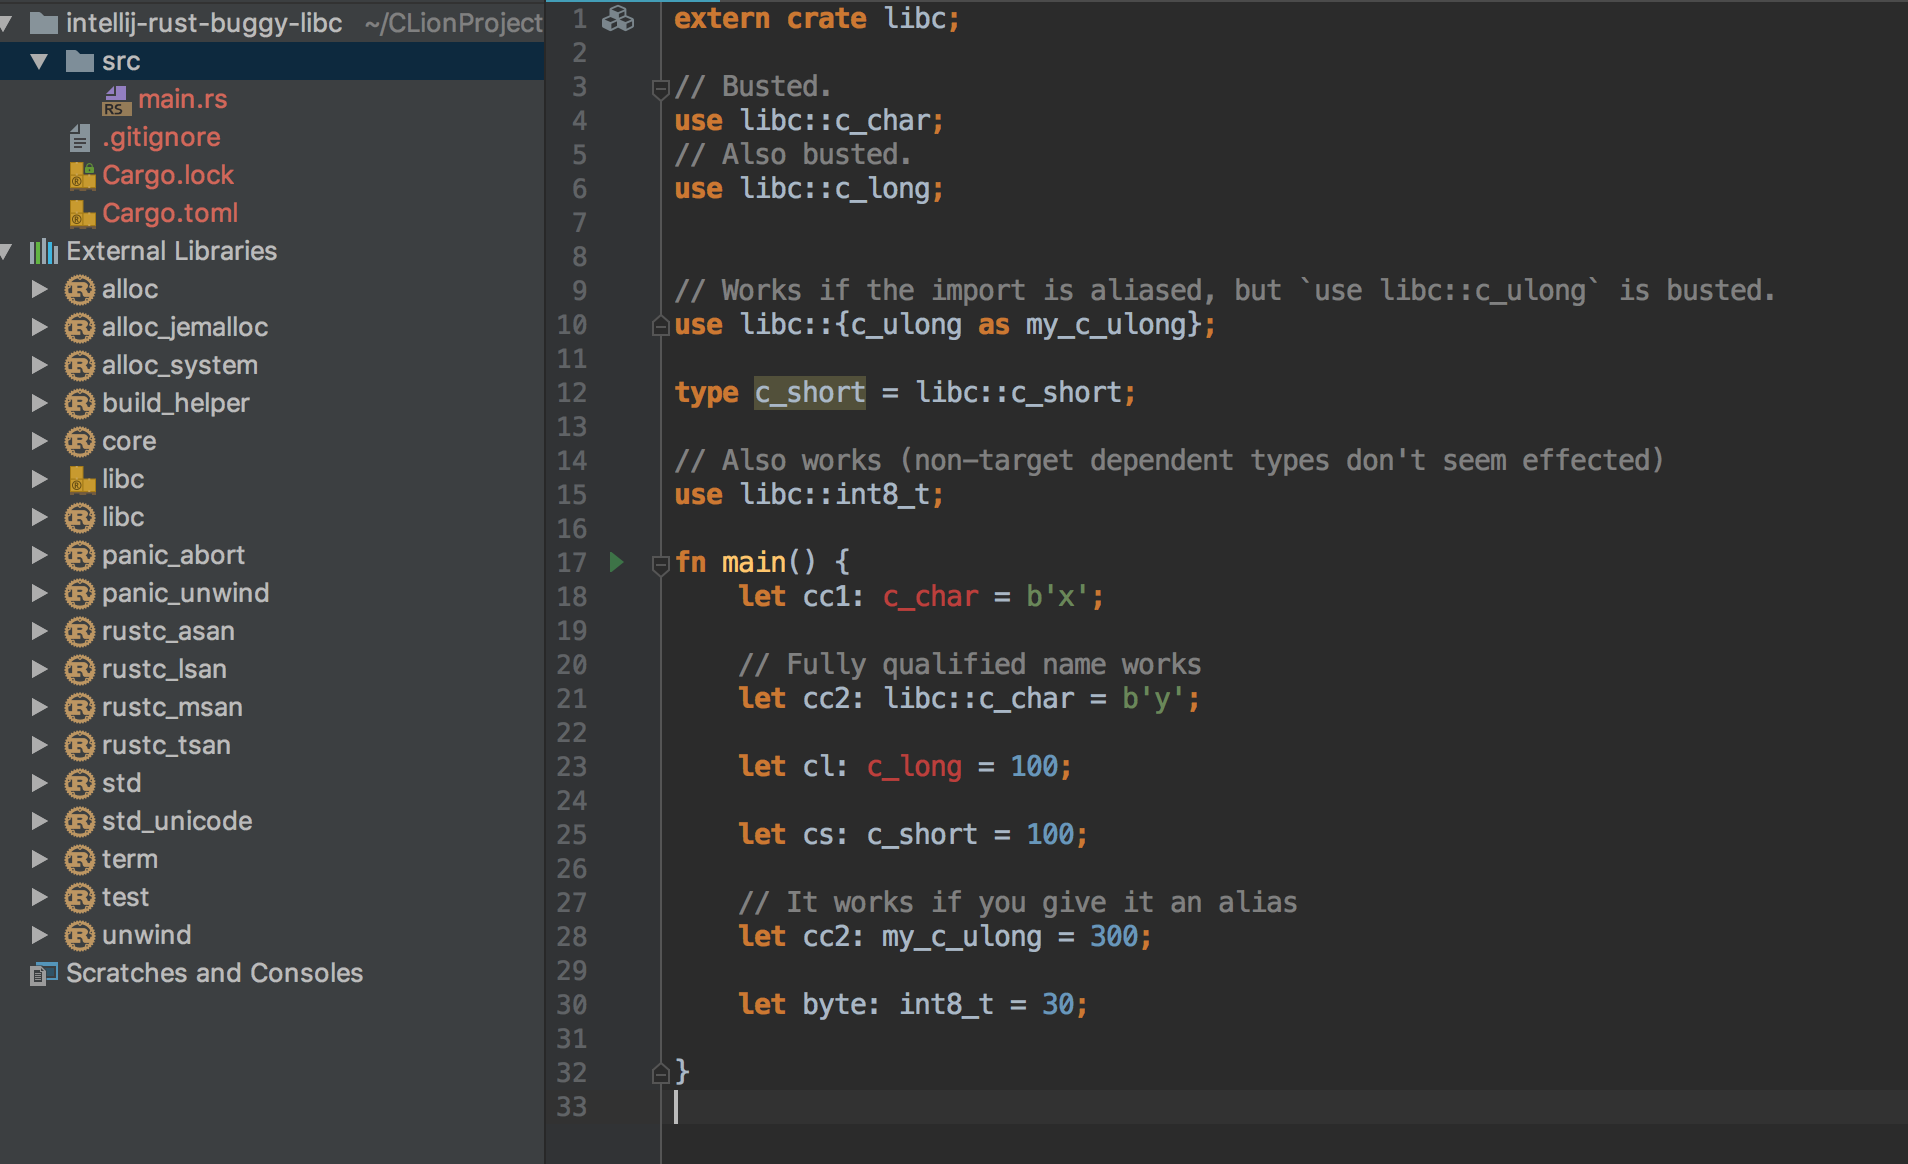 Can't use some imports from libc crate · Issue #2532 · intellij-rust